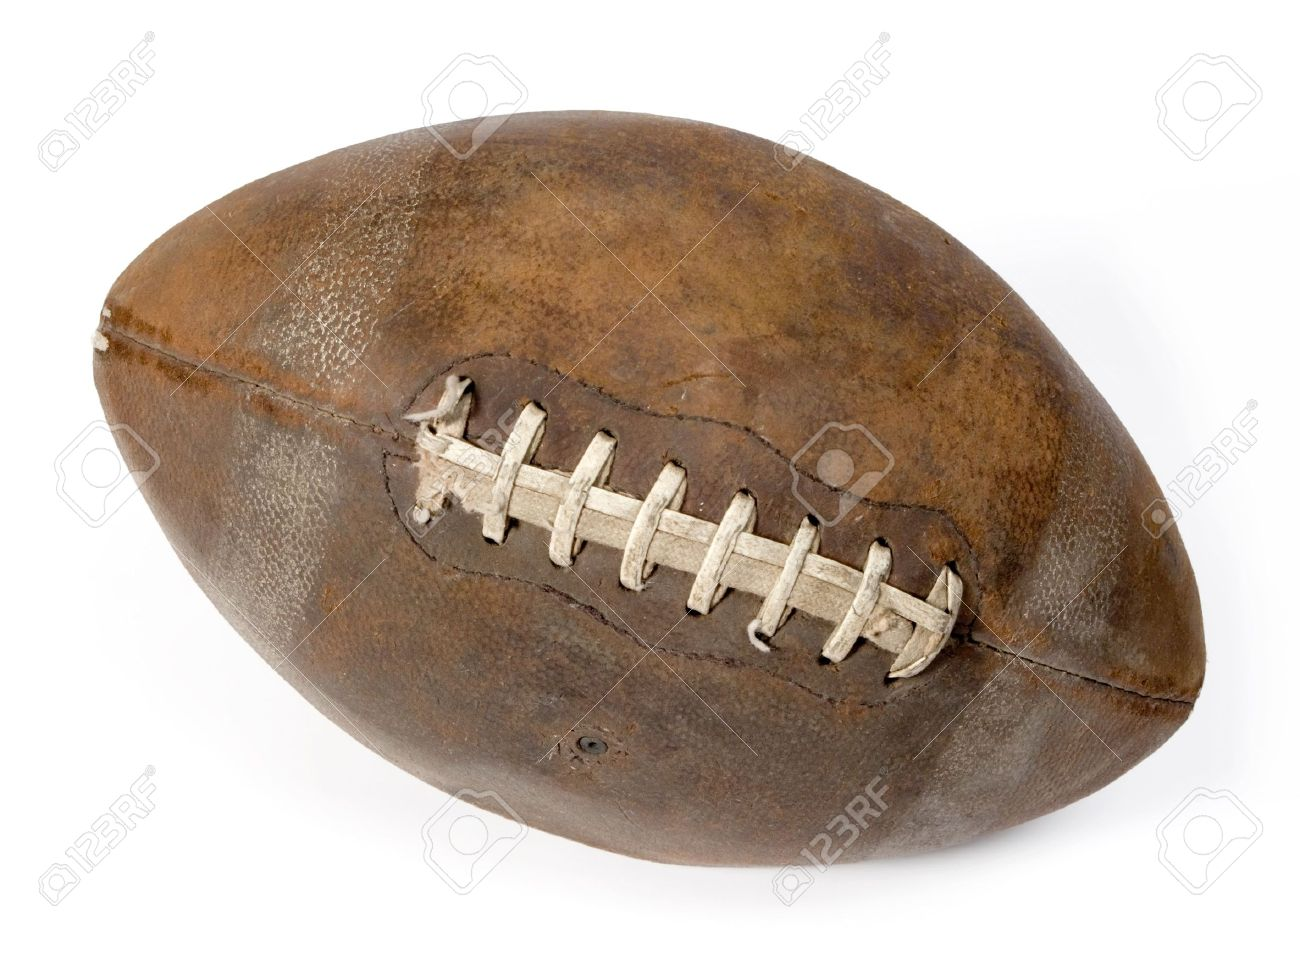 650eb51c76b2c Old Leather Ball To Play Rugby. Stock Photo, Picture And Royalty ...